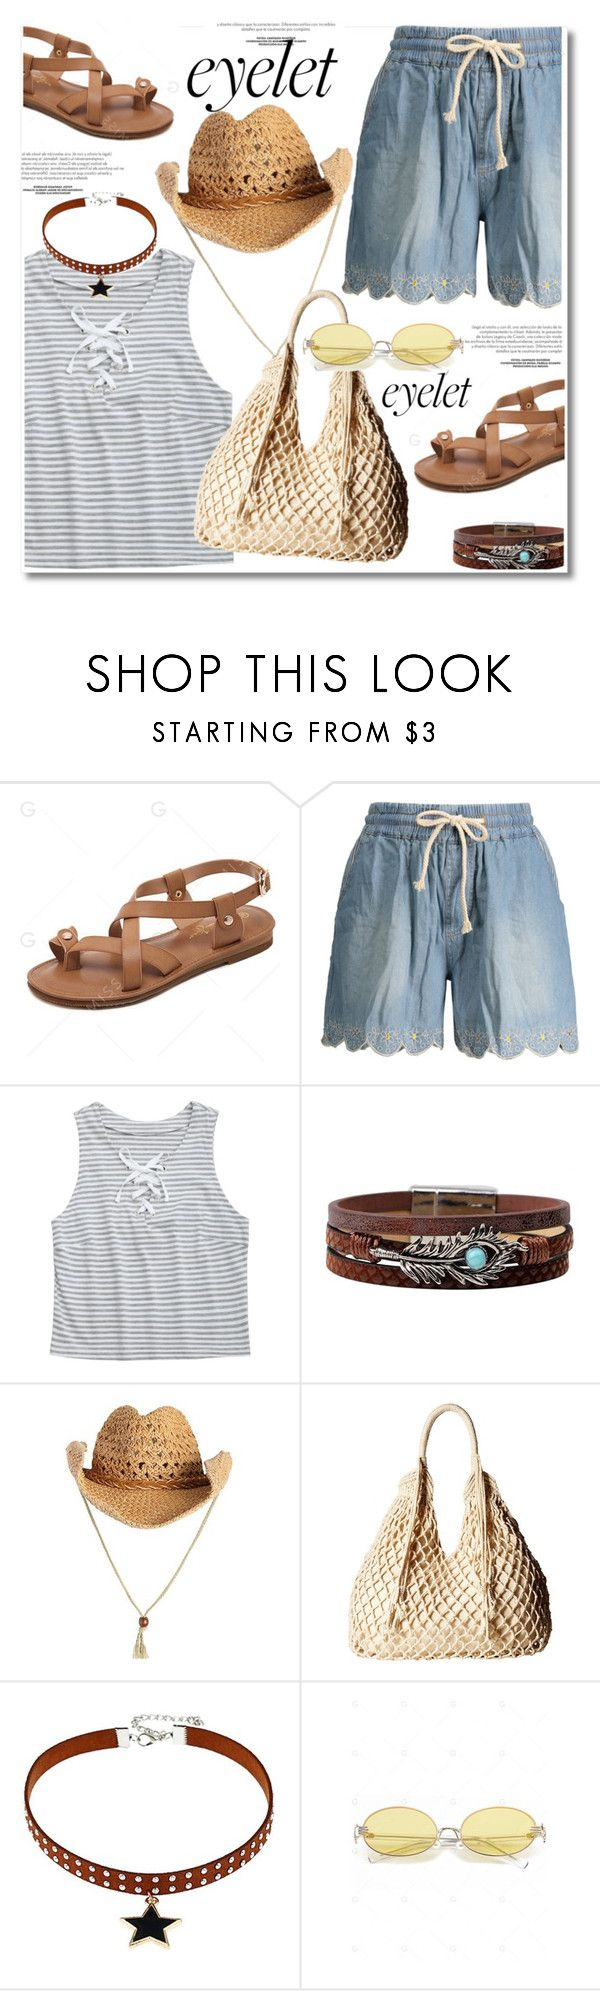 """""""Peek-A-Boo: Eyelet"""" by paculi ❤ liked on Polyvore featuring Scully and eyelet"""